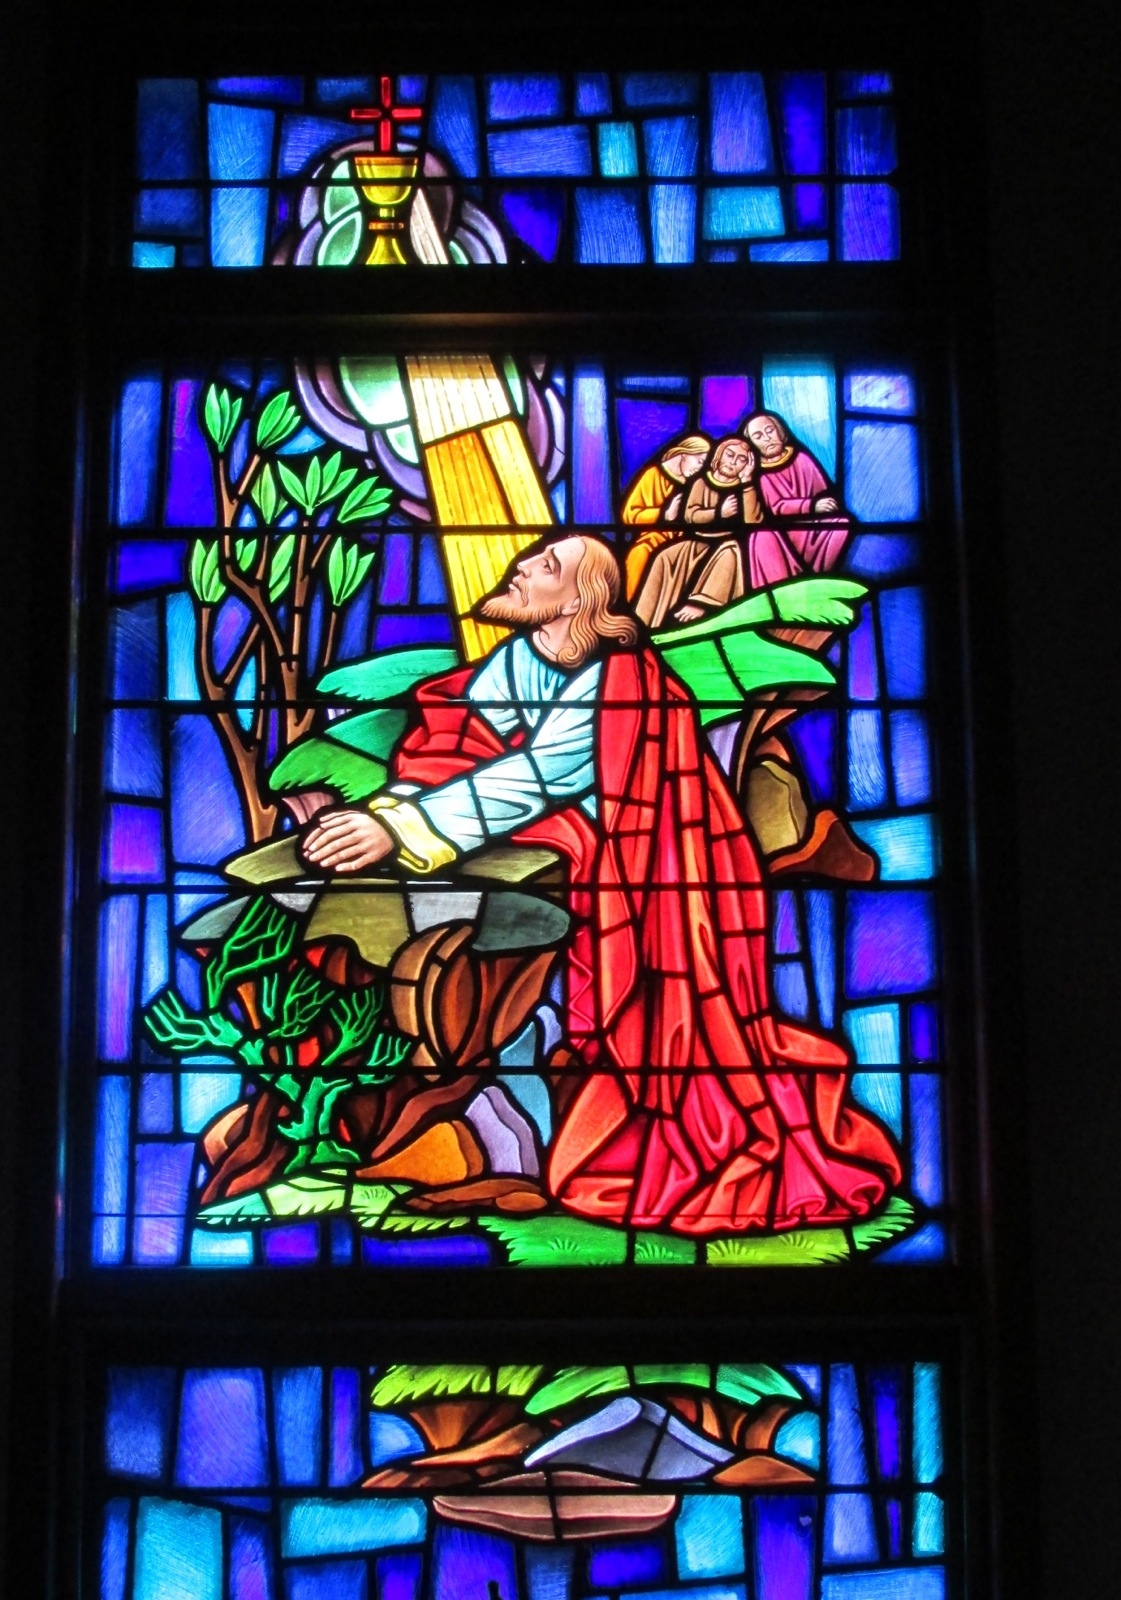 Sea Isle City Methodist Church stained glass window in garden of gethsemane